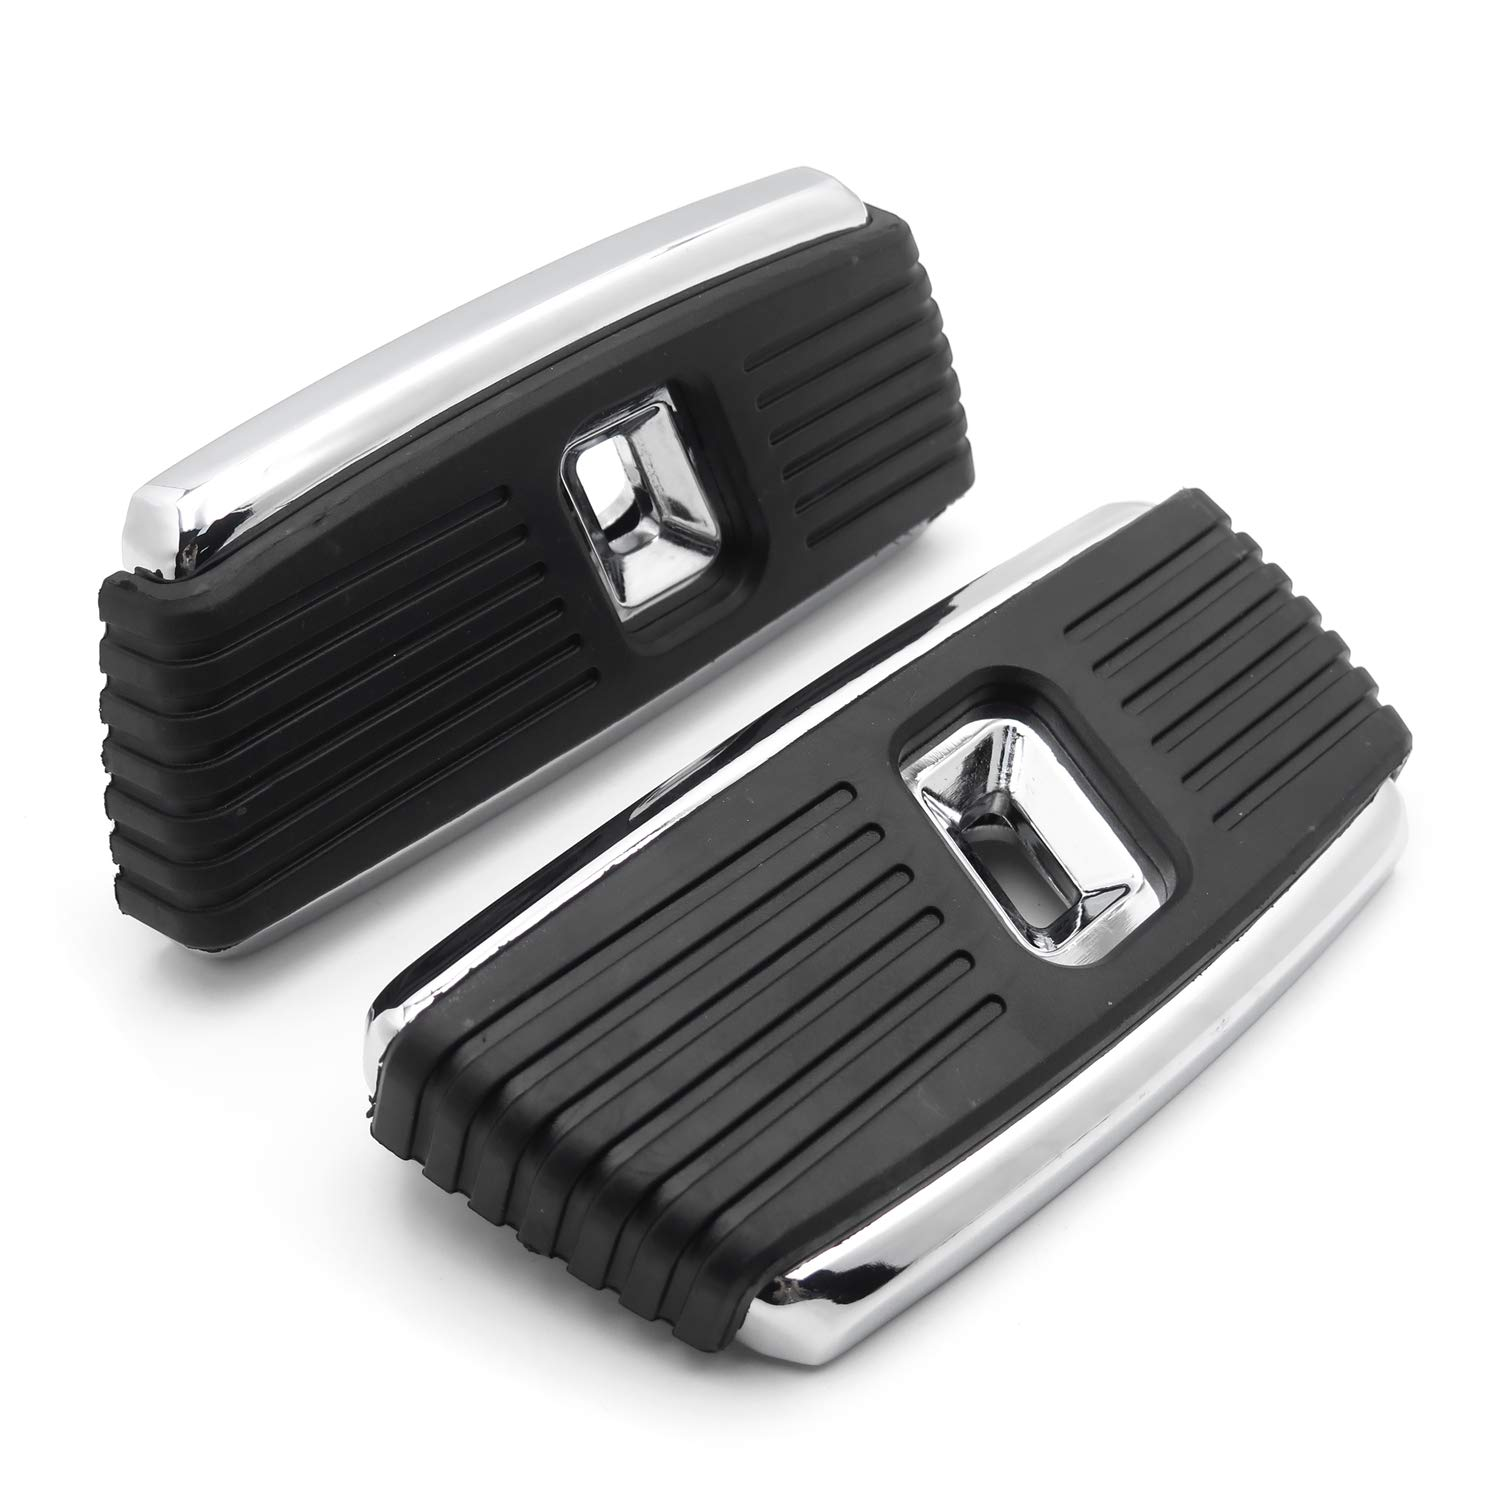 Hana Square Passenger Footboard Floor Boards Compatible With Harley 1986up Touring Models 2006-2017 Dyna 2000-2019 Softail Chrome HTTMT P//N: MT216-129